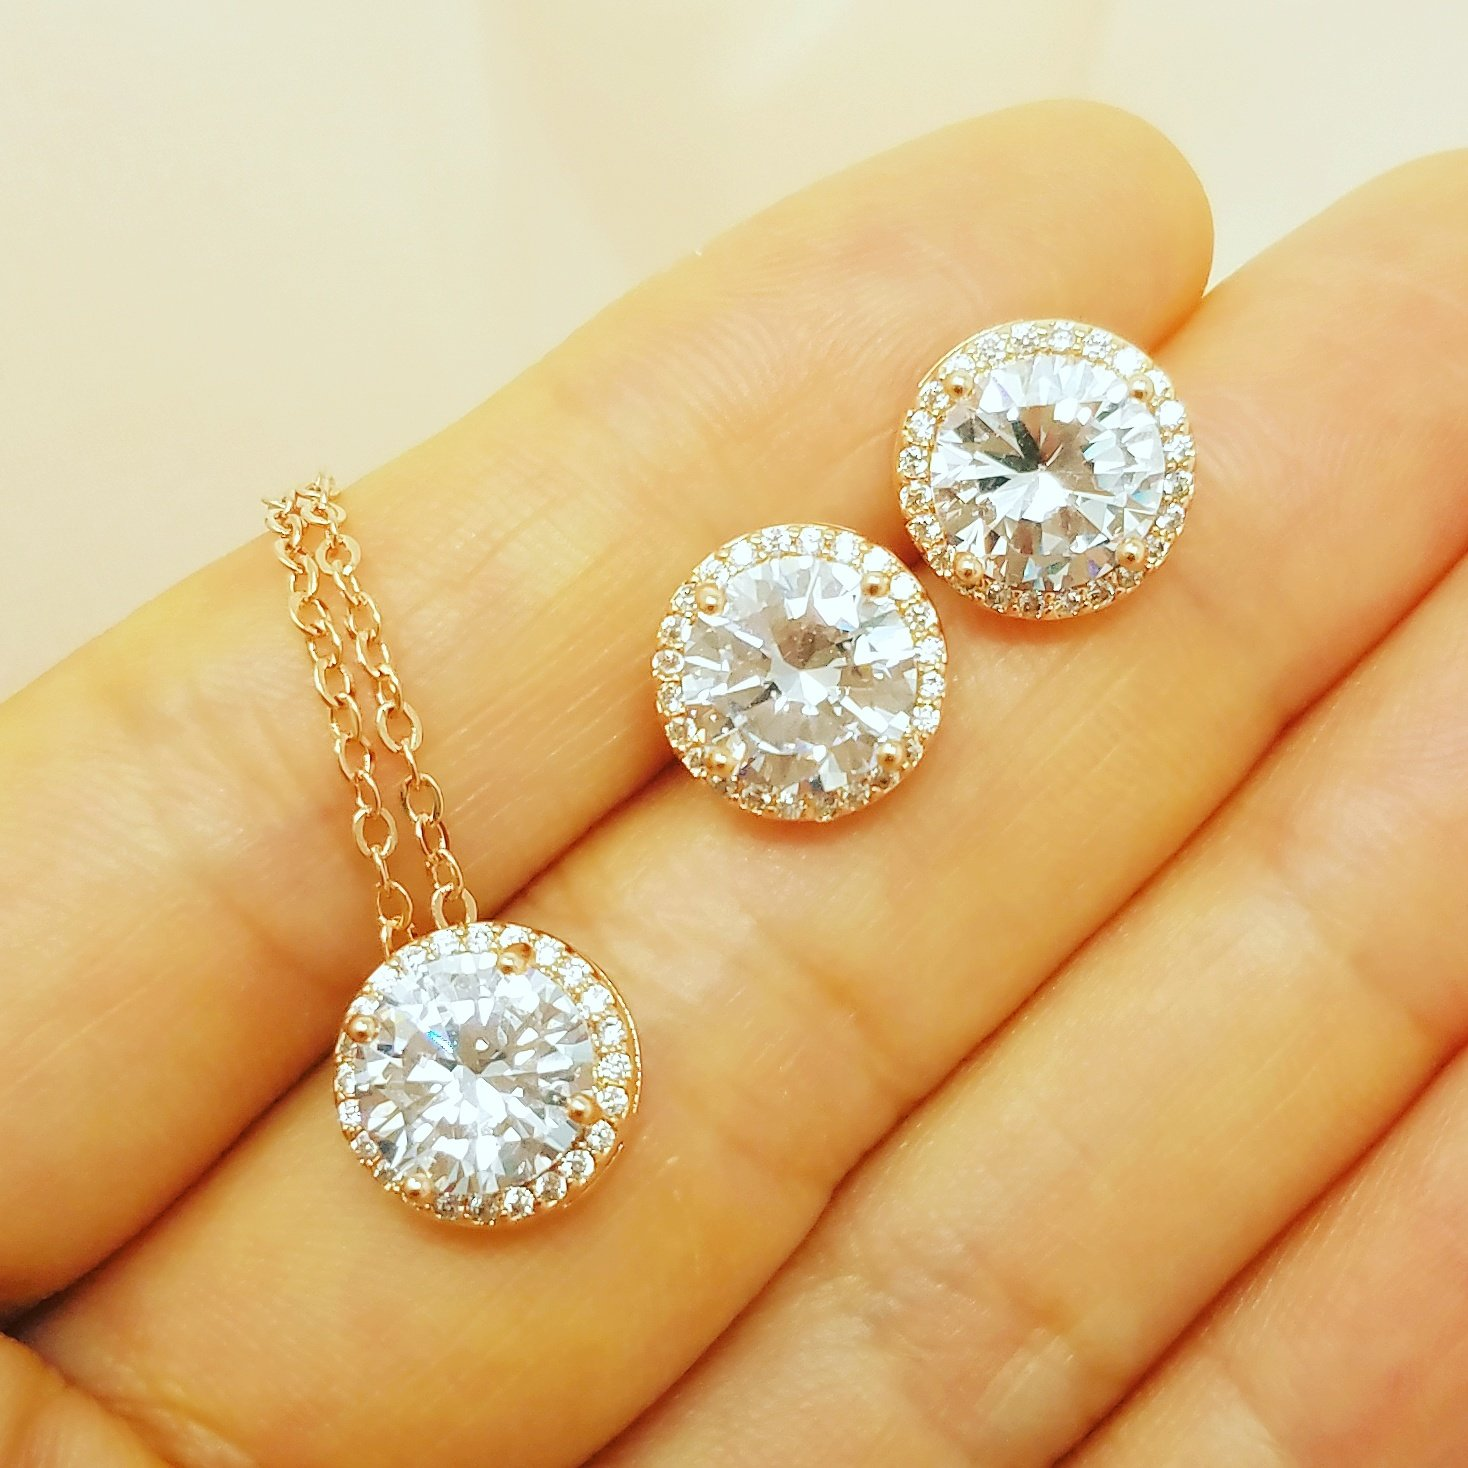 Bridesmaid Gifts - Pretty Halo Cubic-Zirconia Necklace & Earrings Set (18'', Rose gold) by Bride Dazzle (Image #6)